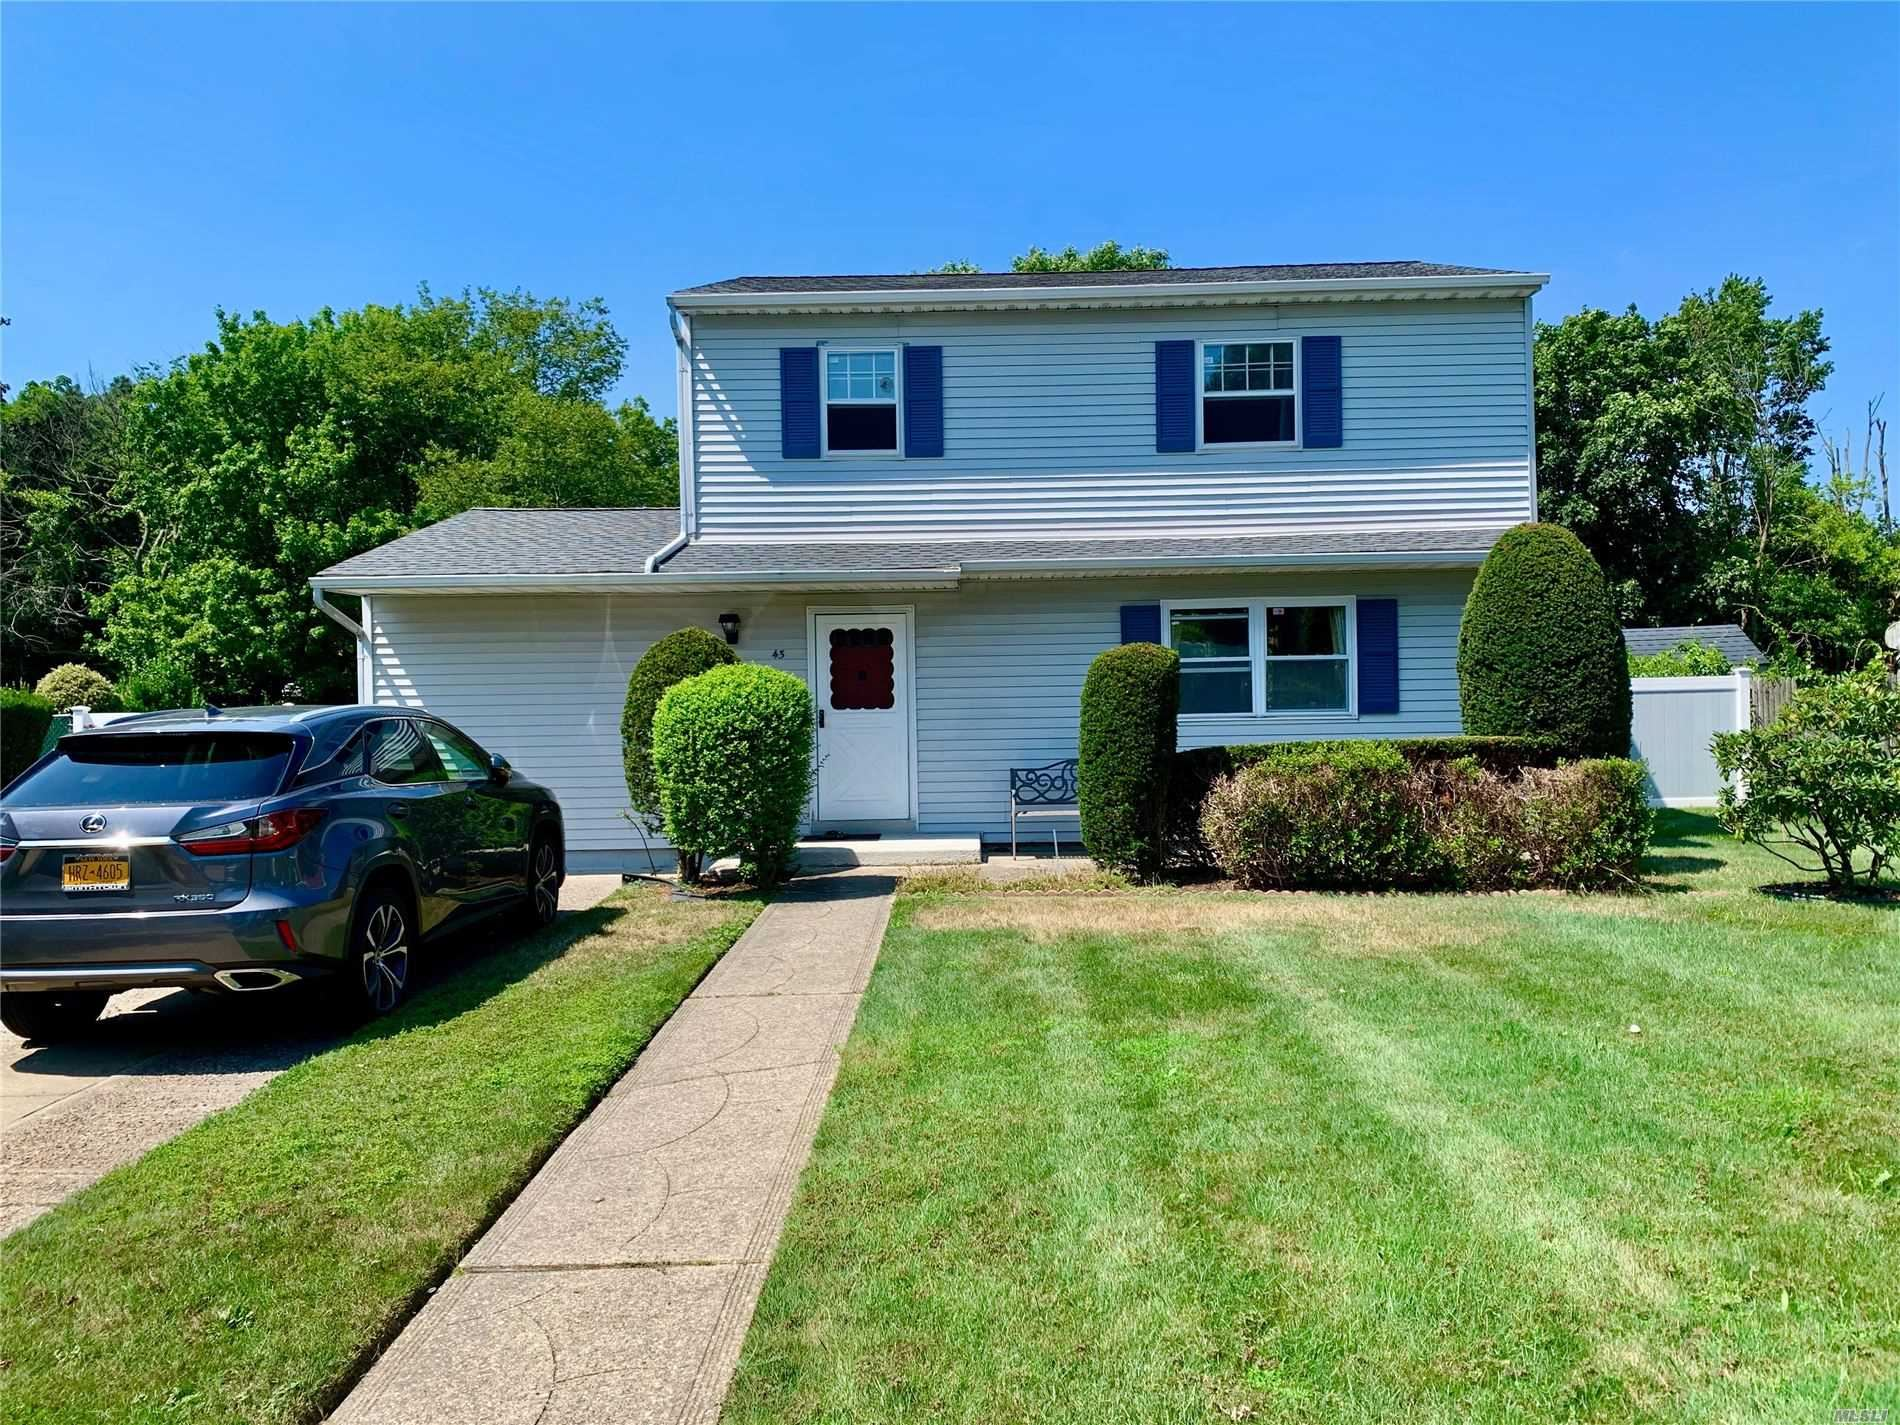 43 2nd Place, Central Islip, NY 11722 - MLS#: 3238039